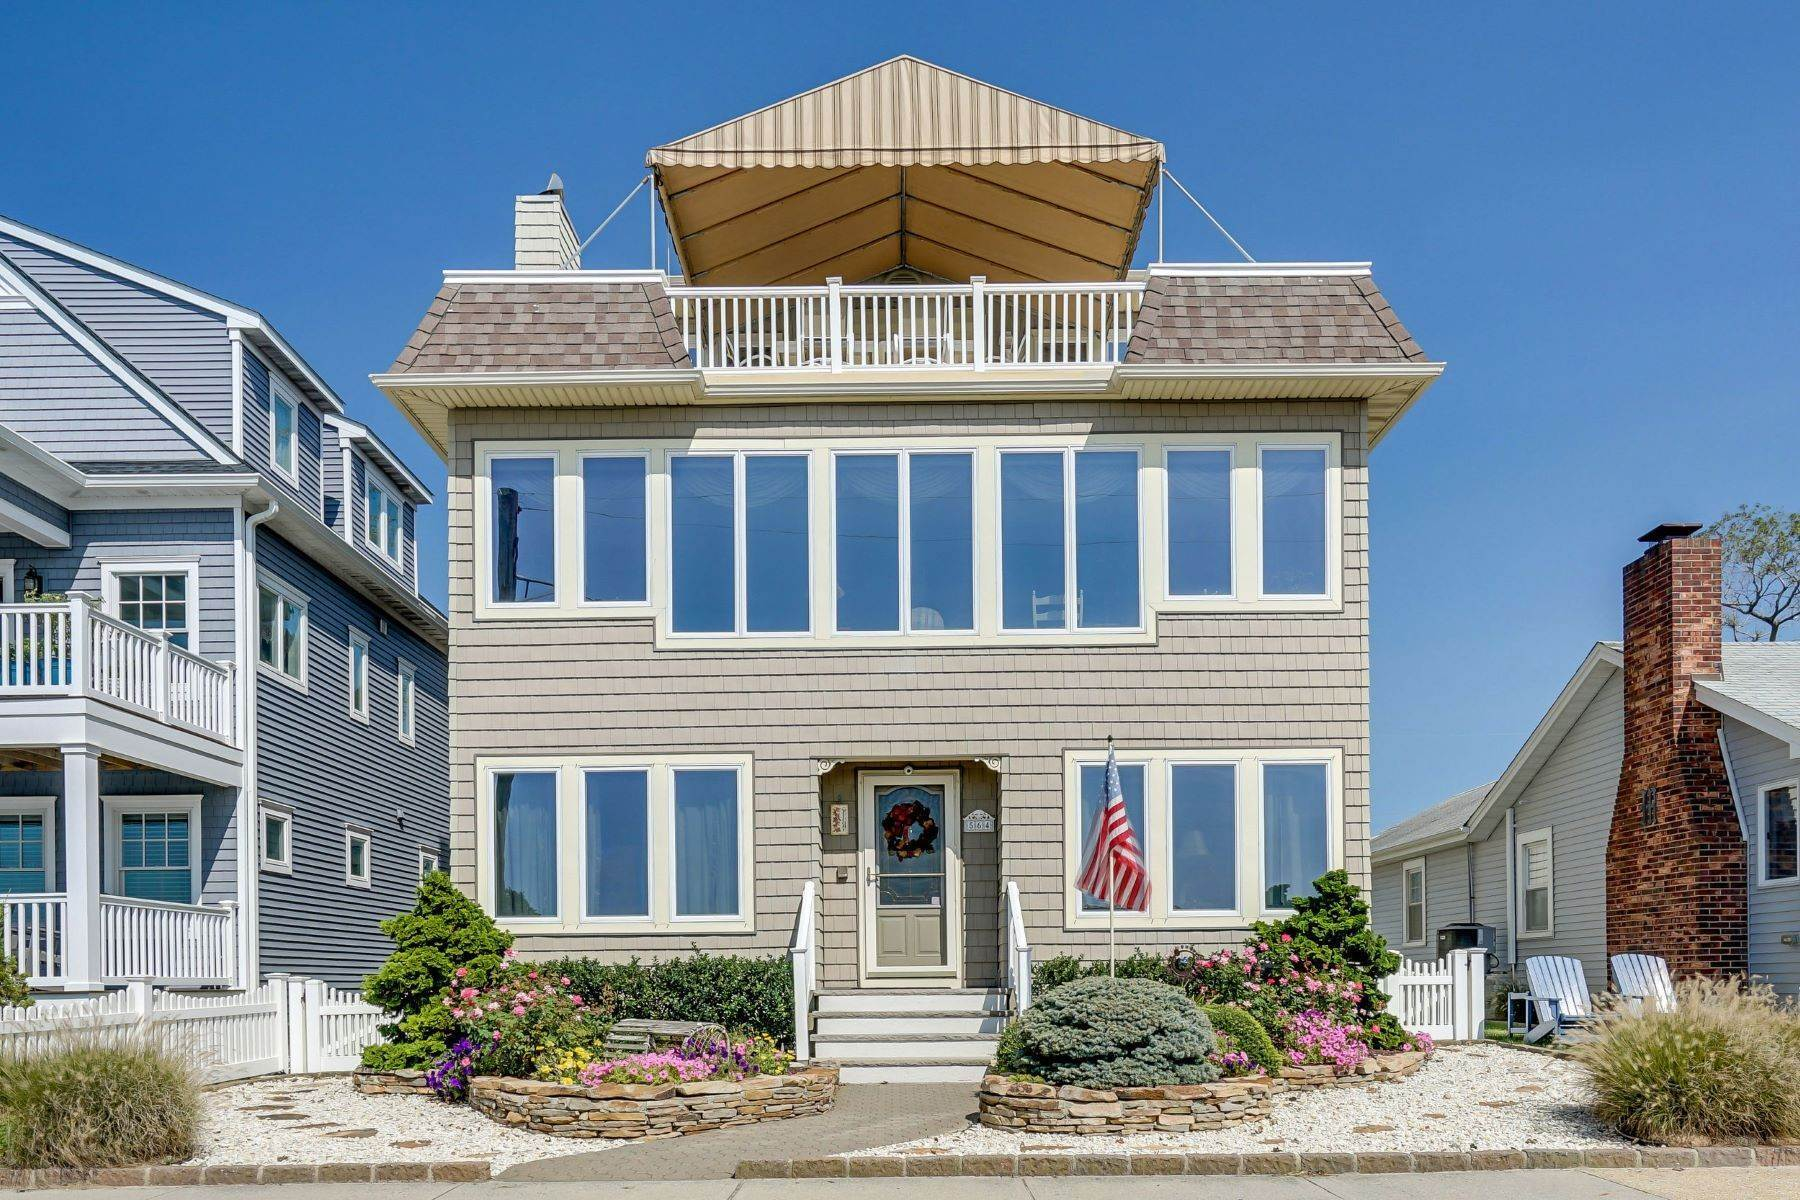 Single Family Homes for Sale at Absolutely Stunning View 564 Riverside Drive Manasquan, New Jersey 08736 United States